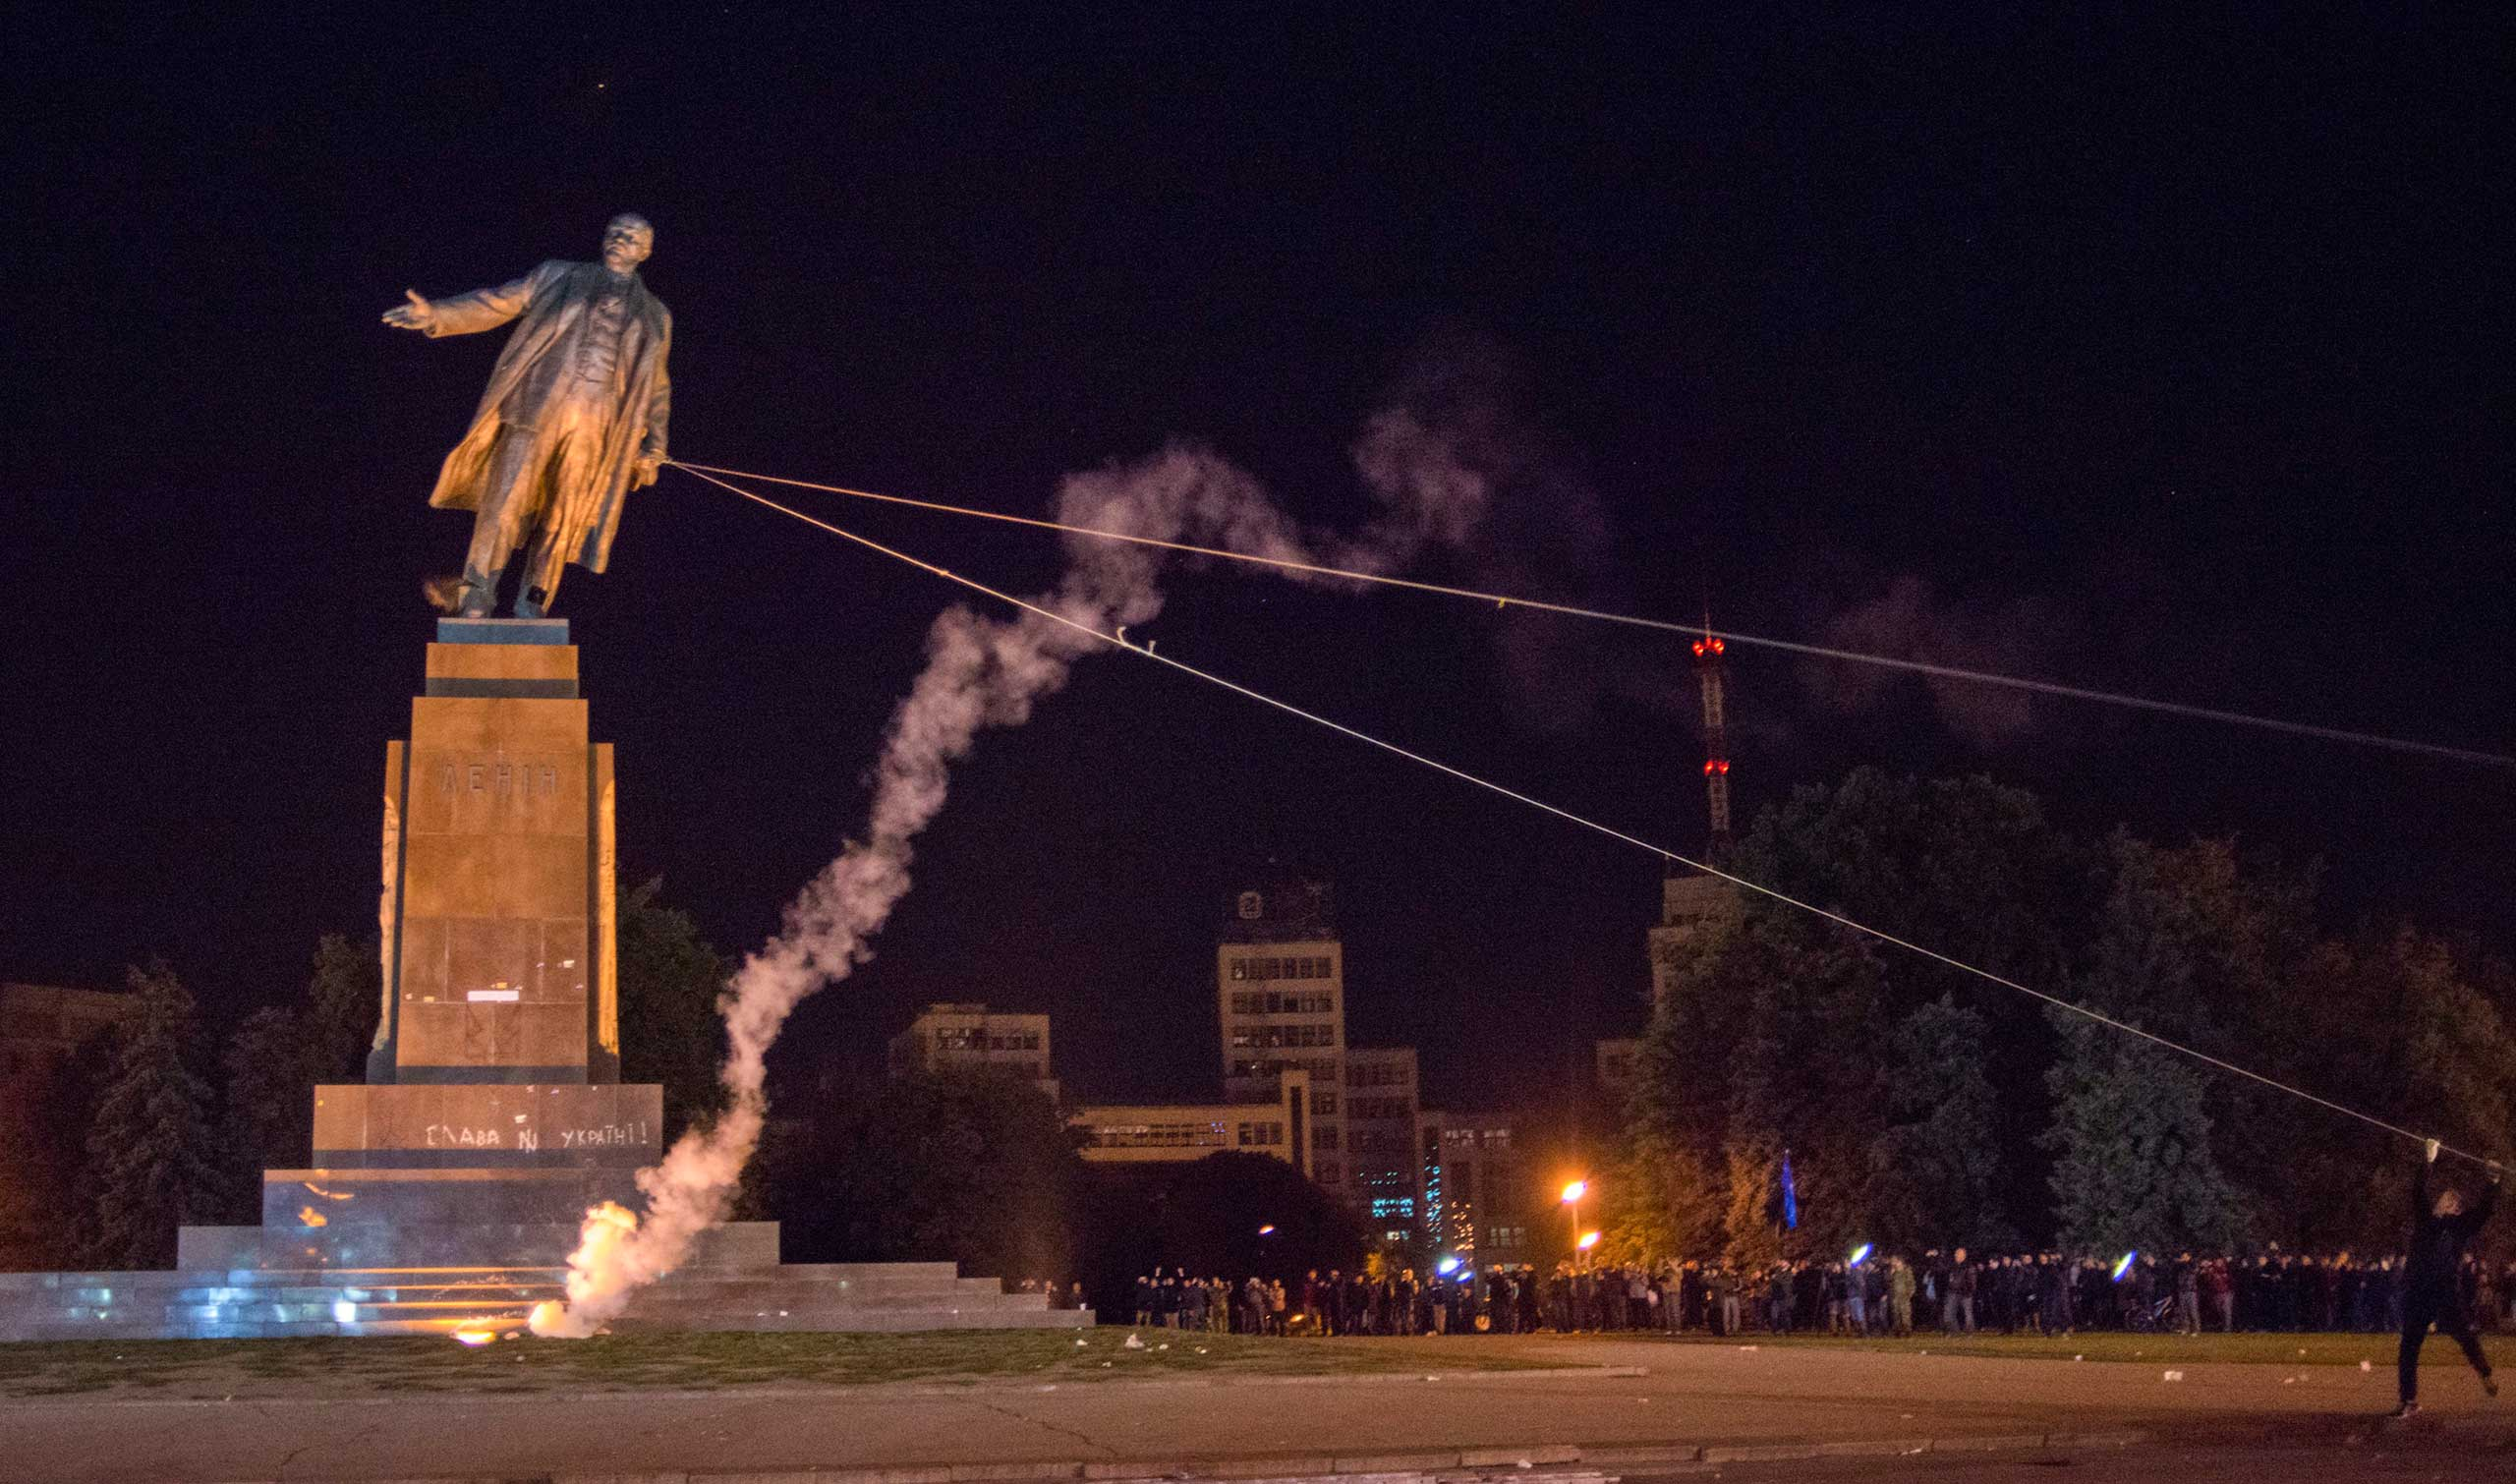 Sept. 28, 2014. Activists dismantle Ukraine's biggest monument to Lenin at a pro-Ukrainian rally in the central square of the eastern city of Kharkiv, Ukraine.